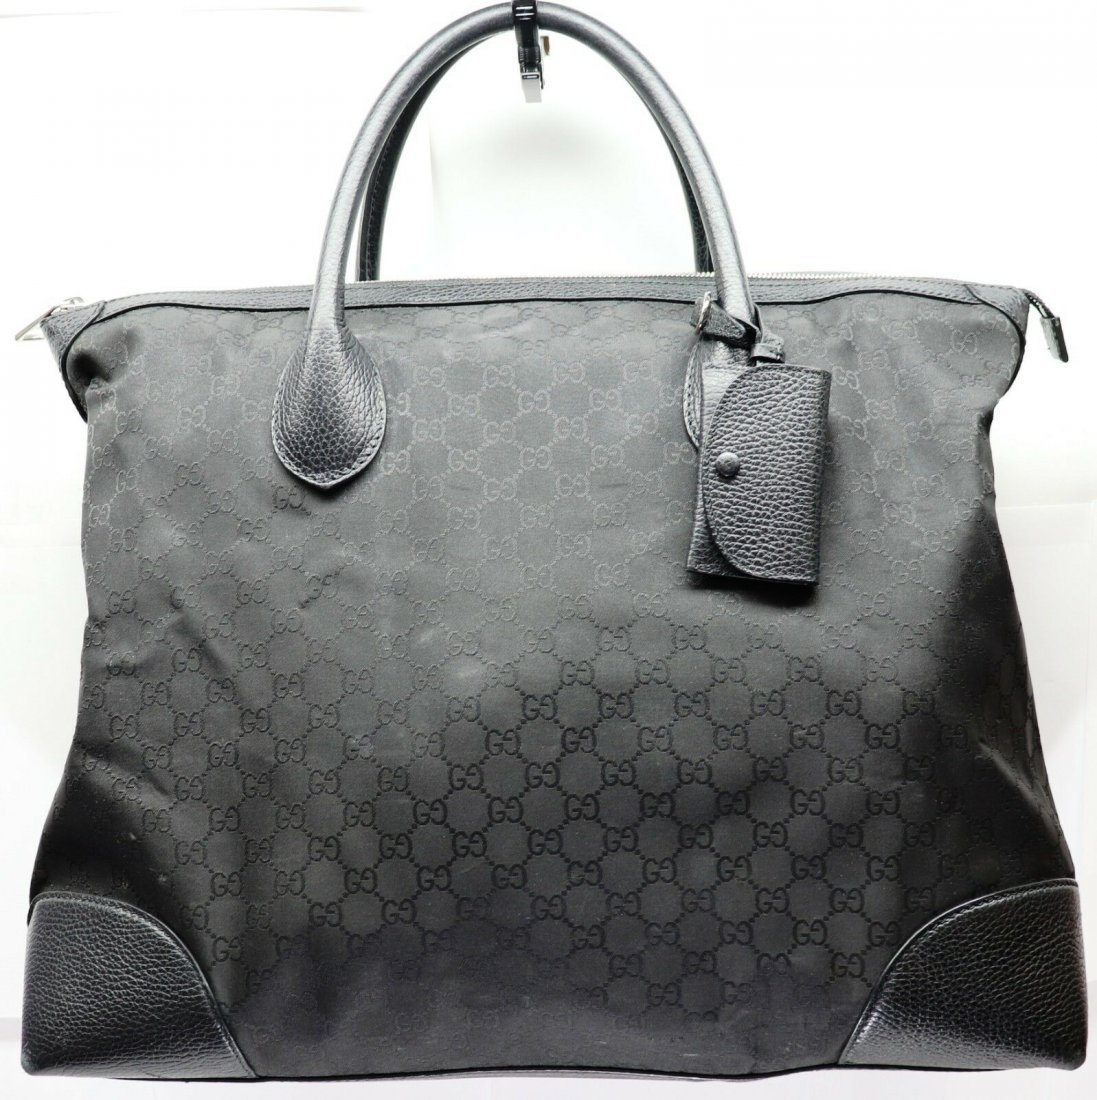 Gucci GG Guccissima Large Canvas and Leather Bag